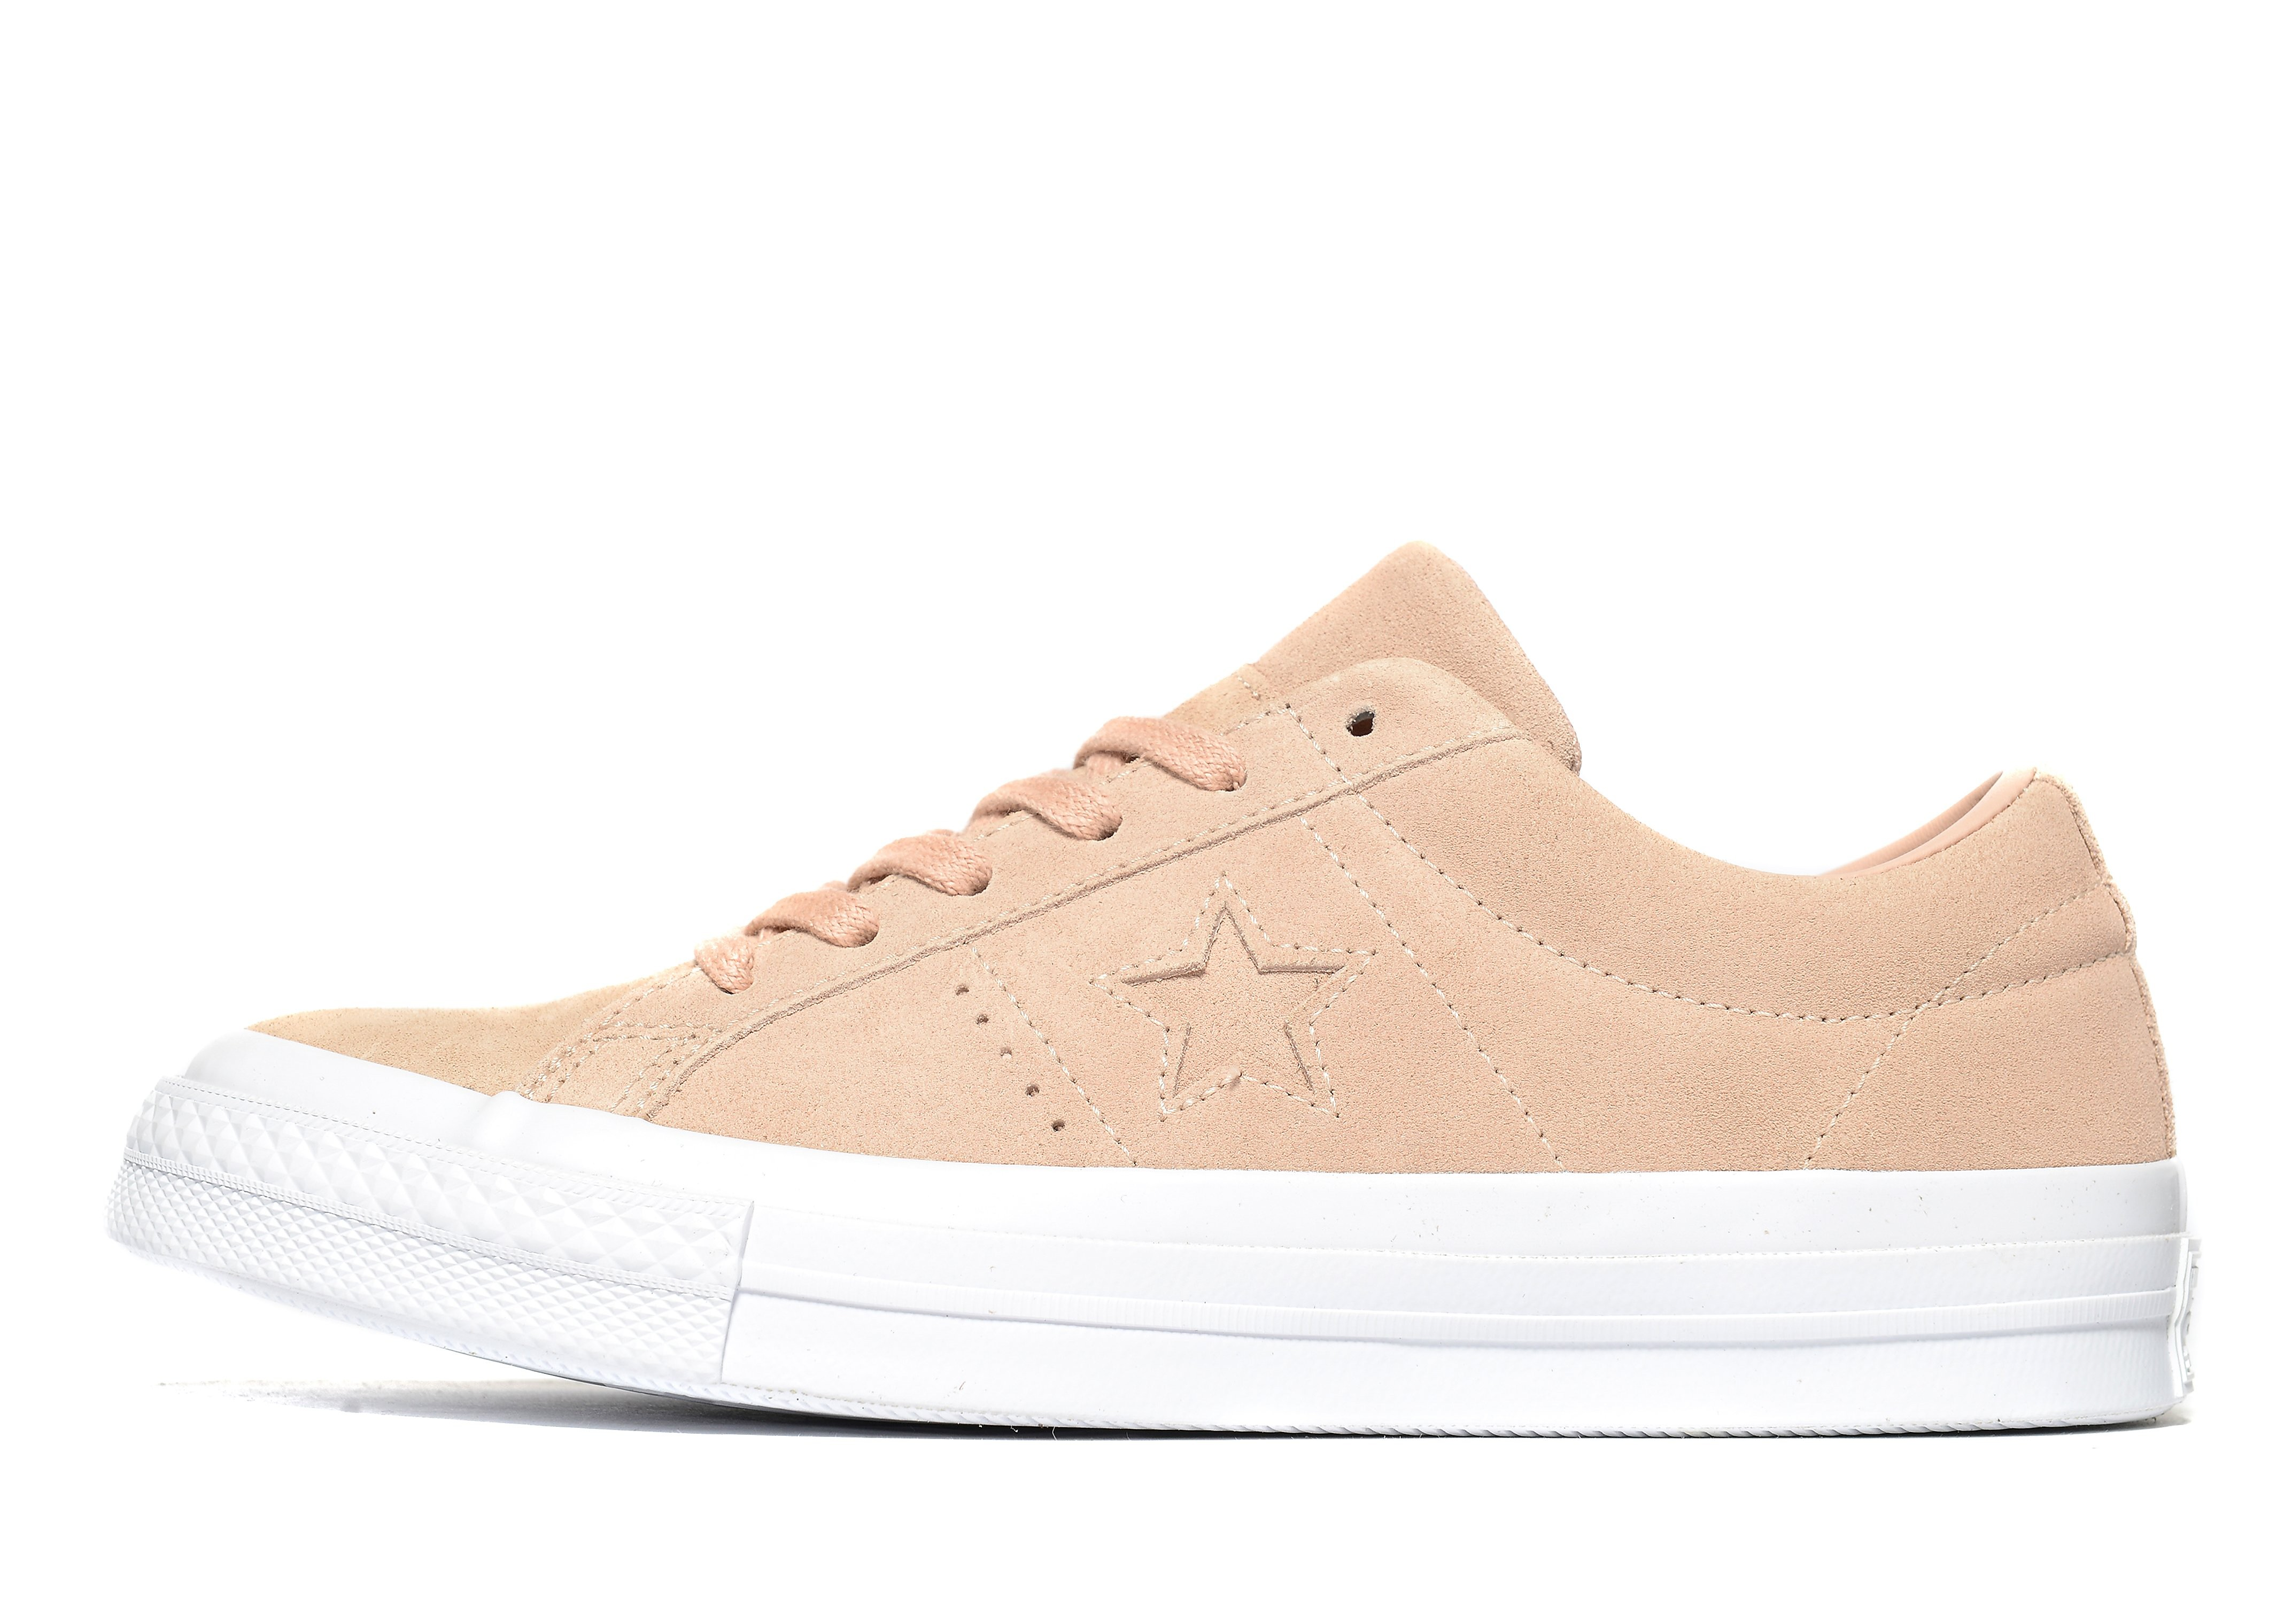 Converse One Star Suede Women's